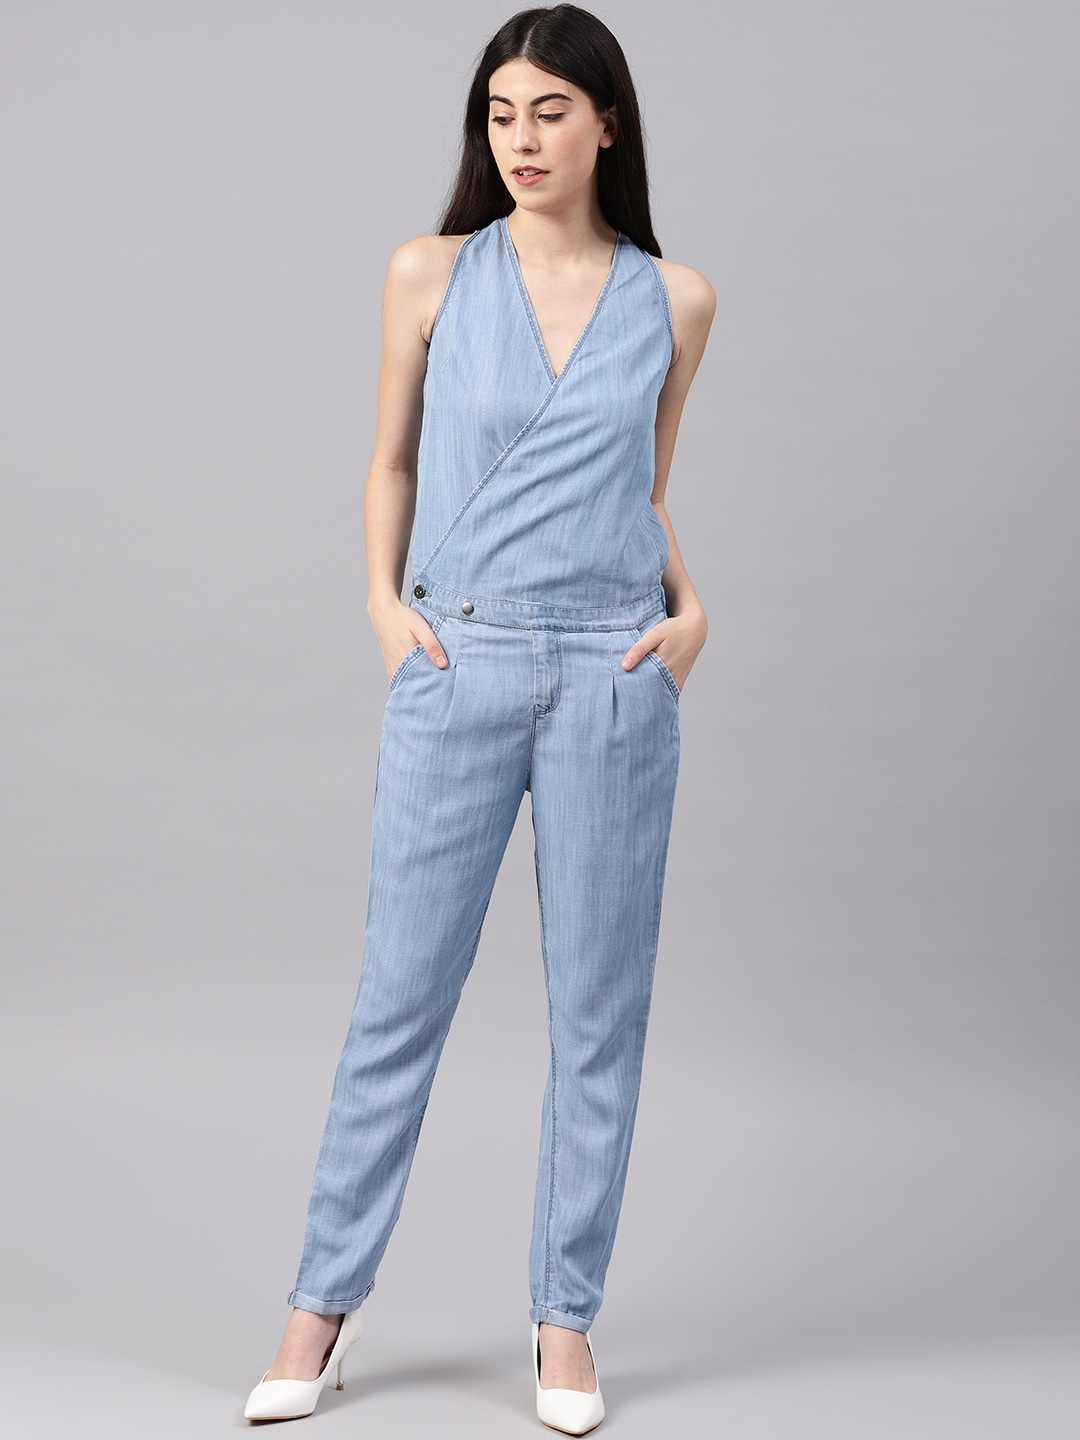 f869ae4a01a Brand Jumpsuit - Buy Brand Jumpsuit online in India